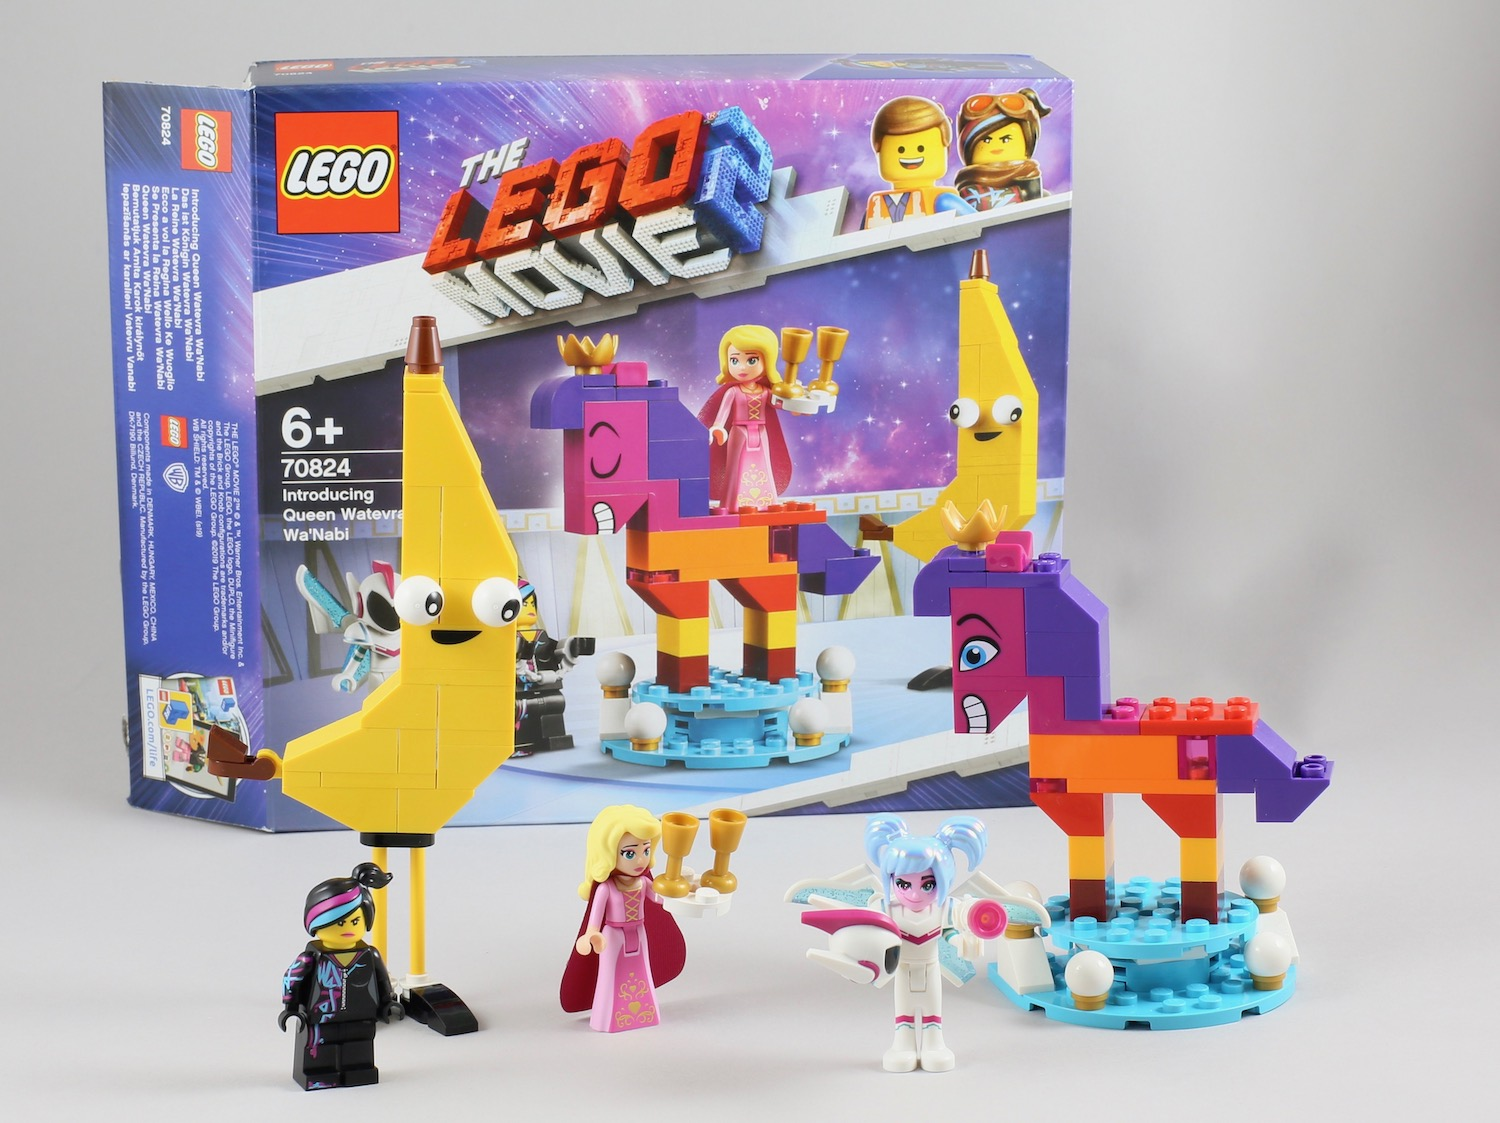 Lego Movie 2 Review 70824 Introducing Queen Watevra Wa Nabi New Elementary Lego Parts Sets And Techniques